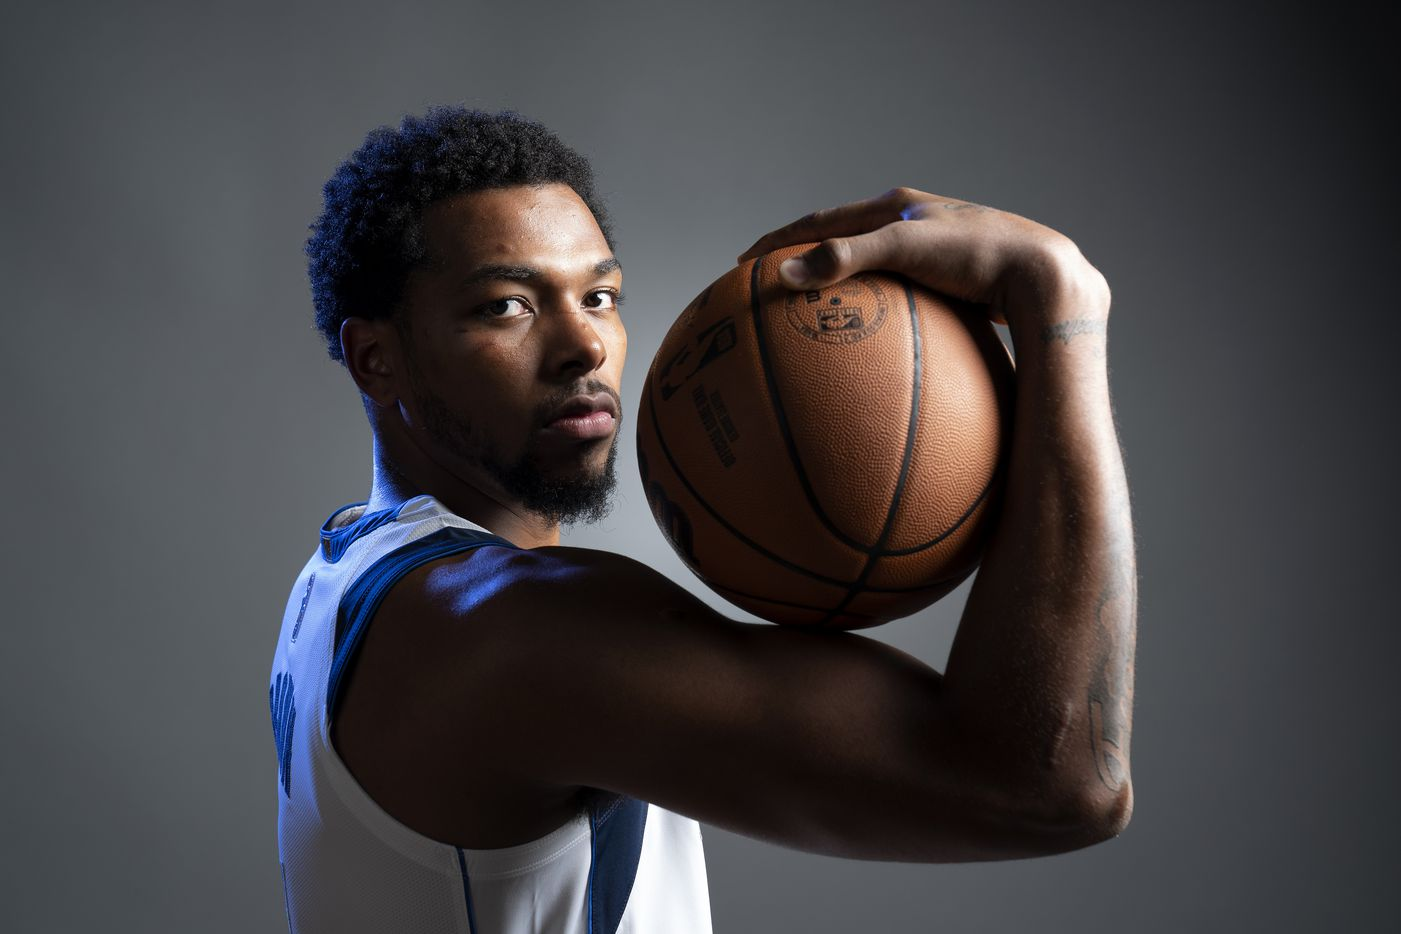 Dallas Mavericks guard Sterling Brown (0) poses for a portrait during the Dallas Mavericks media day, Monday, September 27, 2021 at American Airlines Center in Dallas. (Jeffrey McWhorter/Special Contributor)